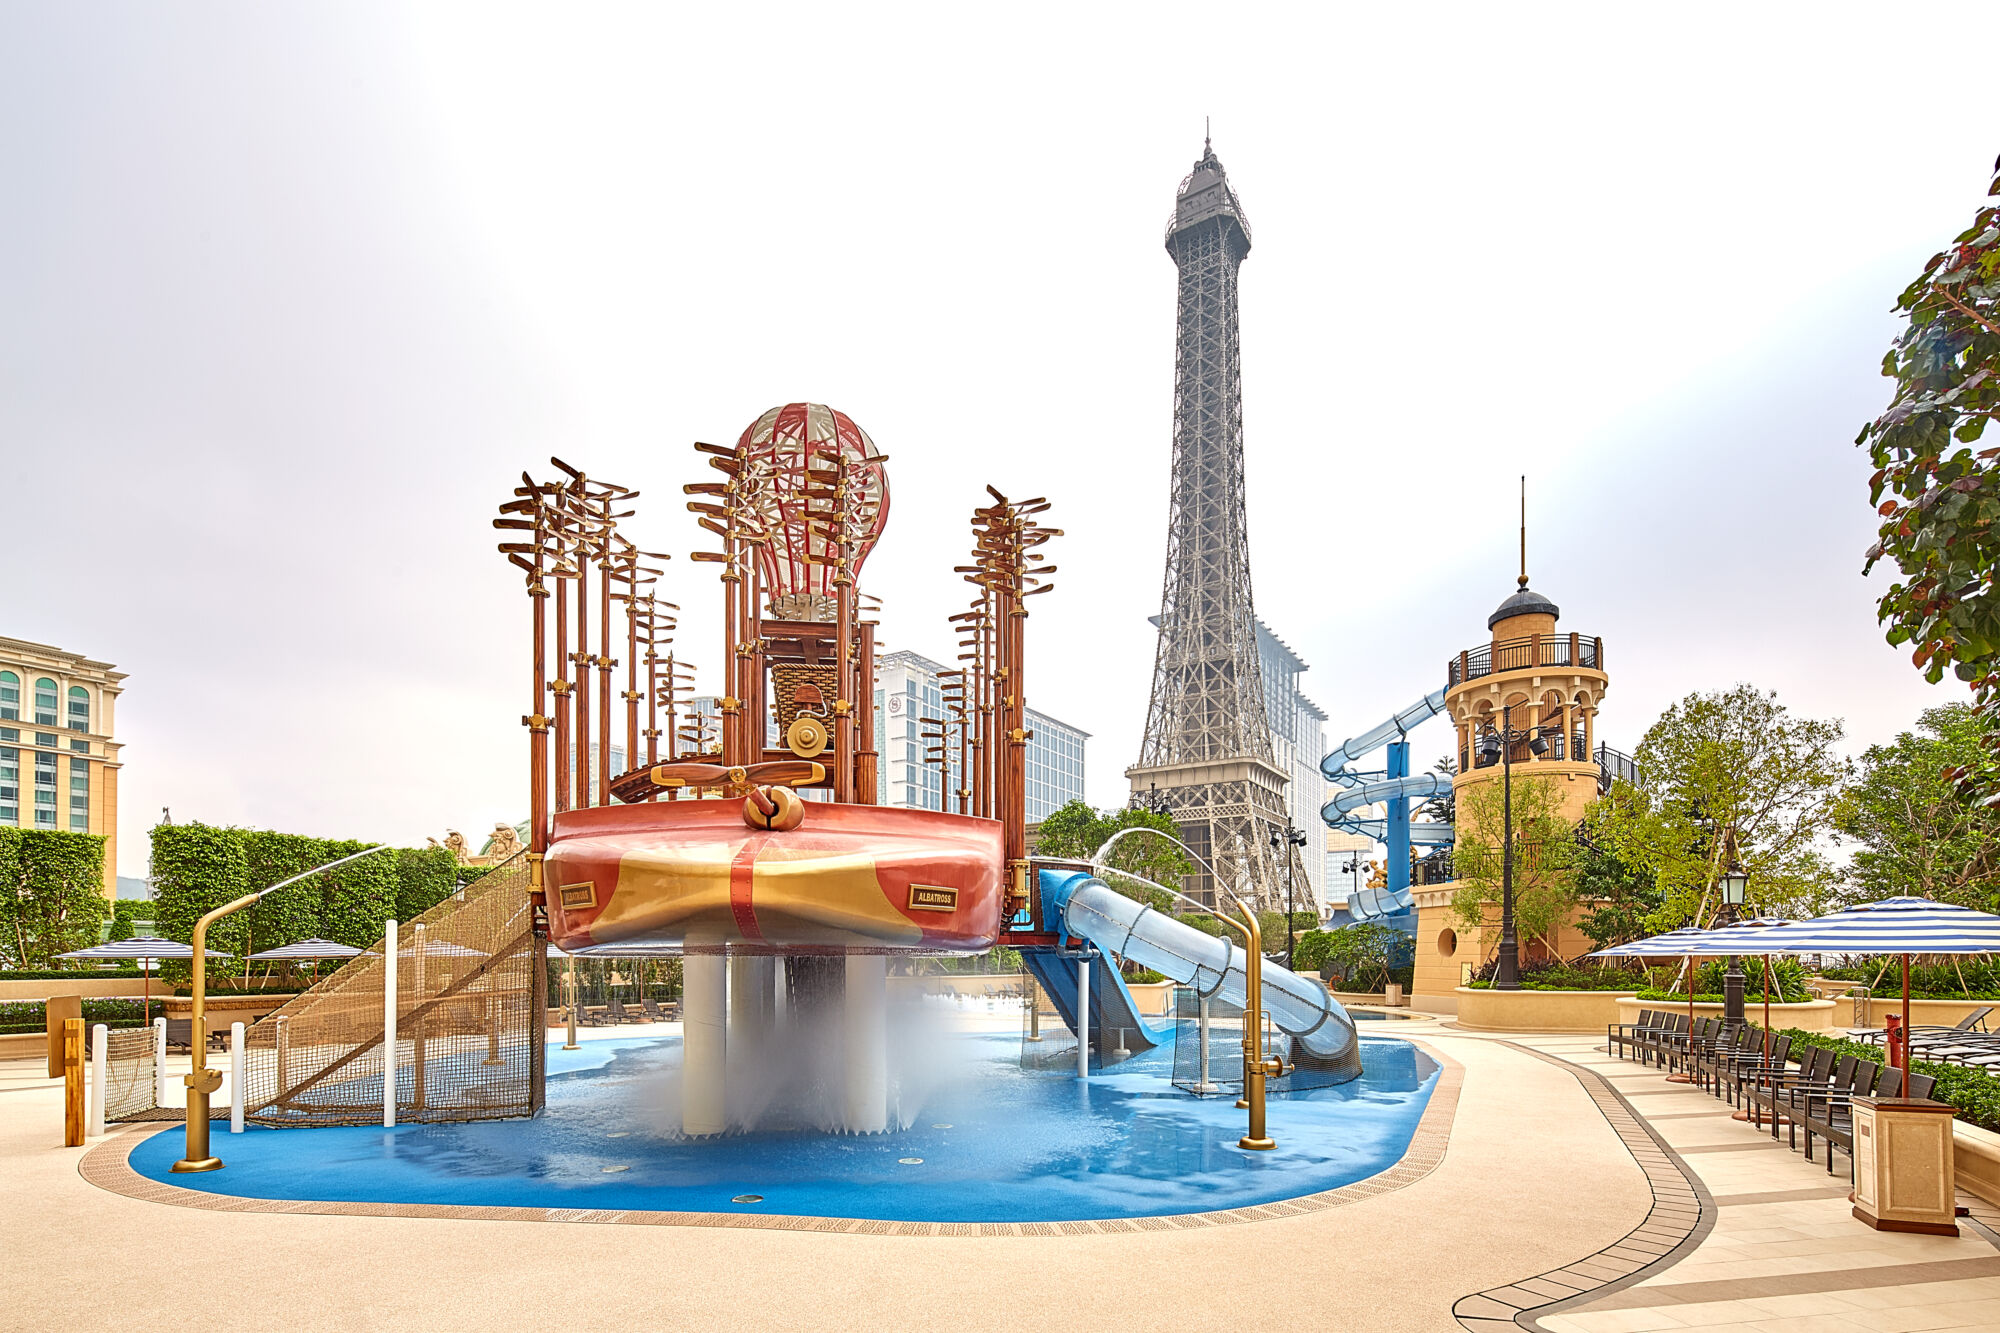 Aqua World at The Parisian Macao